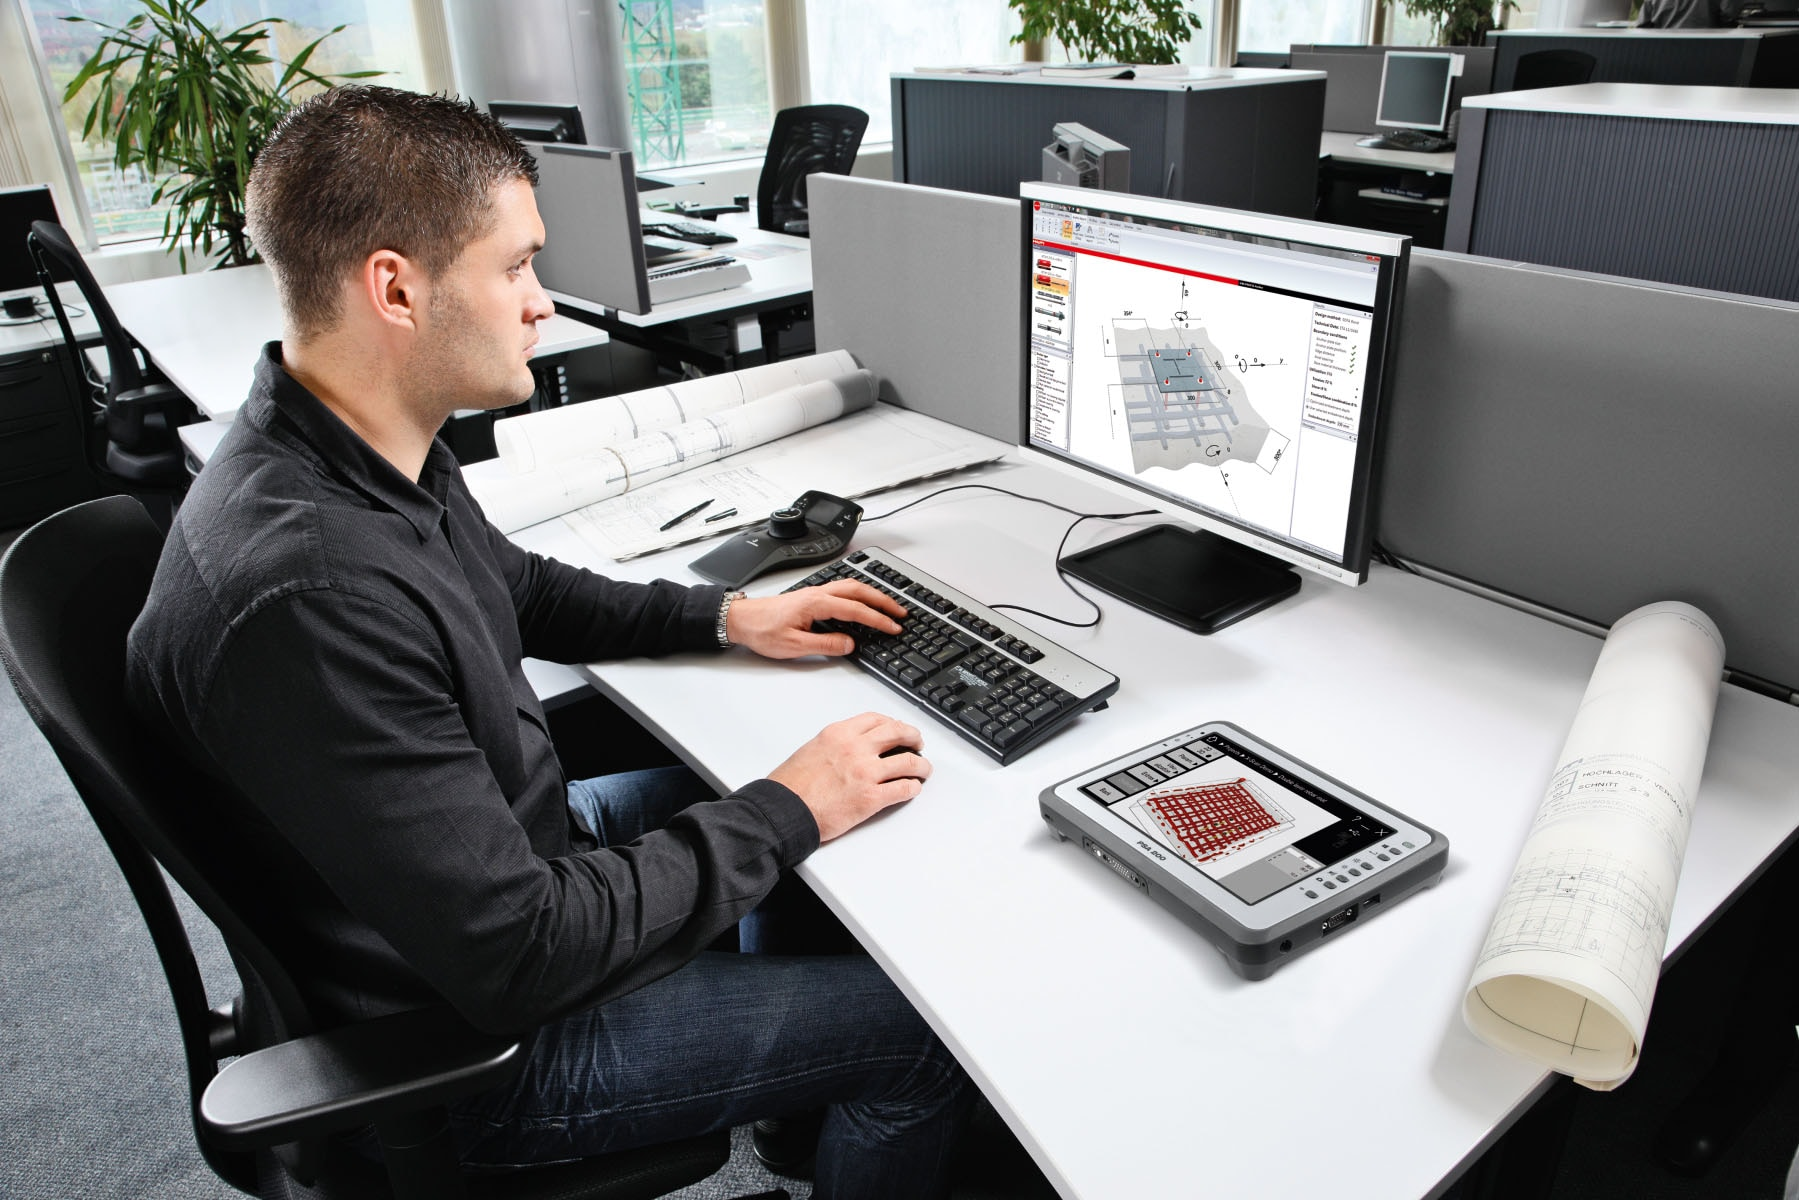 Hilti PC software for Ferroscan and X-Scan detection systems